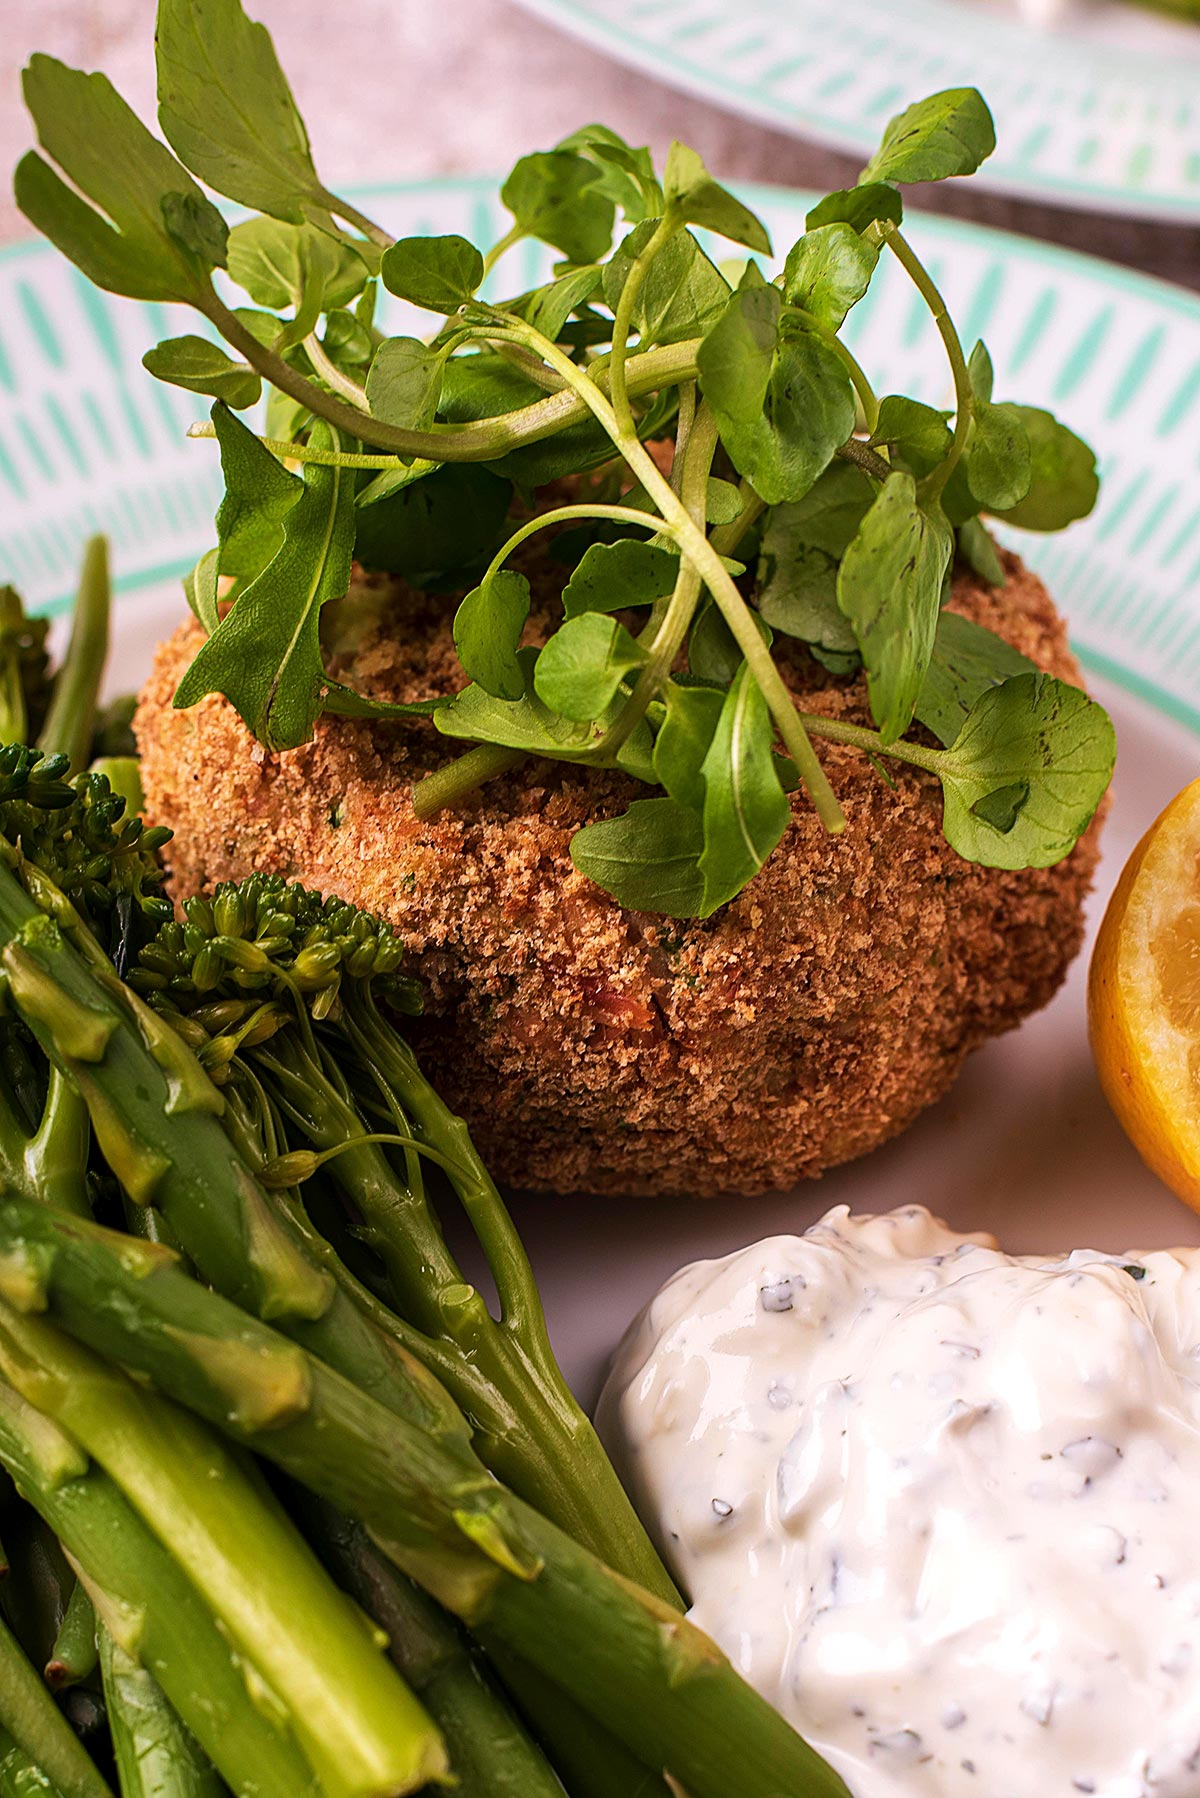 Baked fish cake with a topping of salad